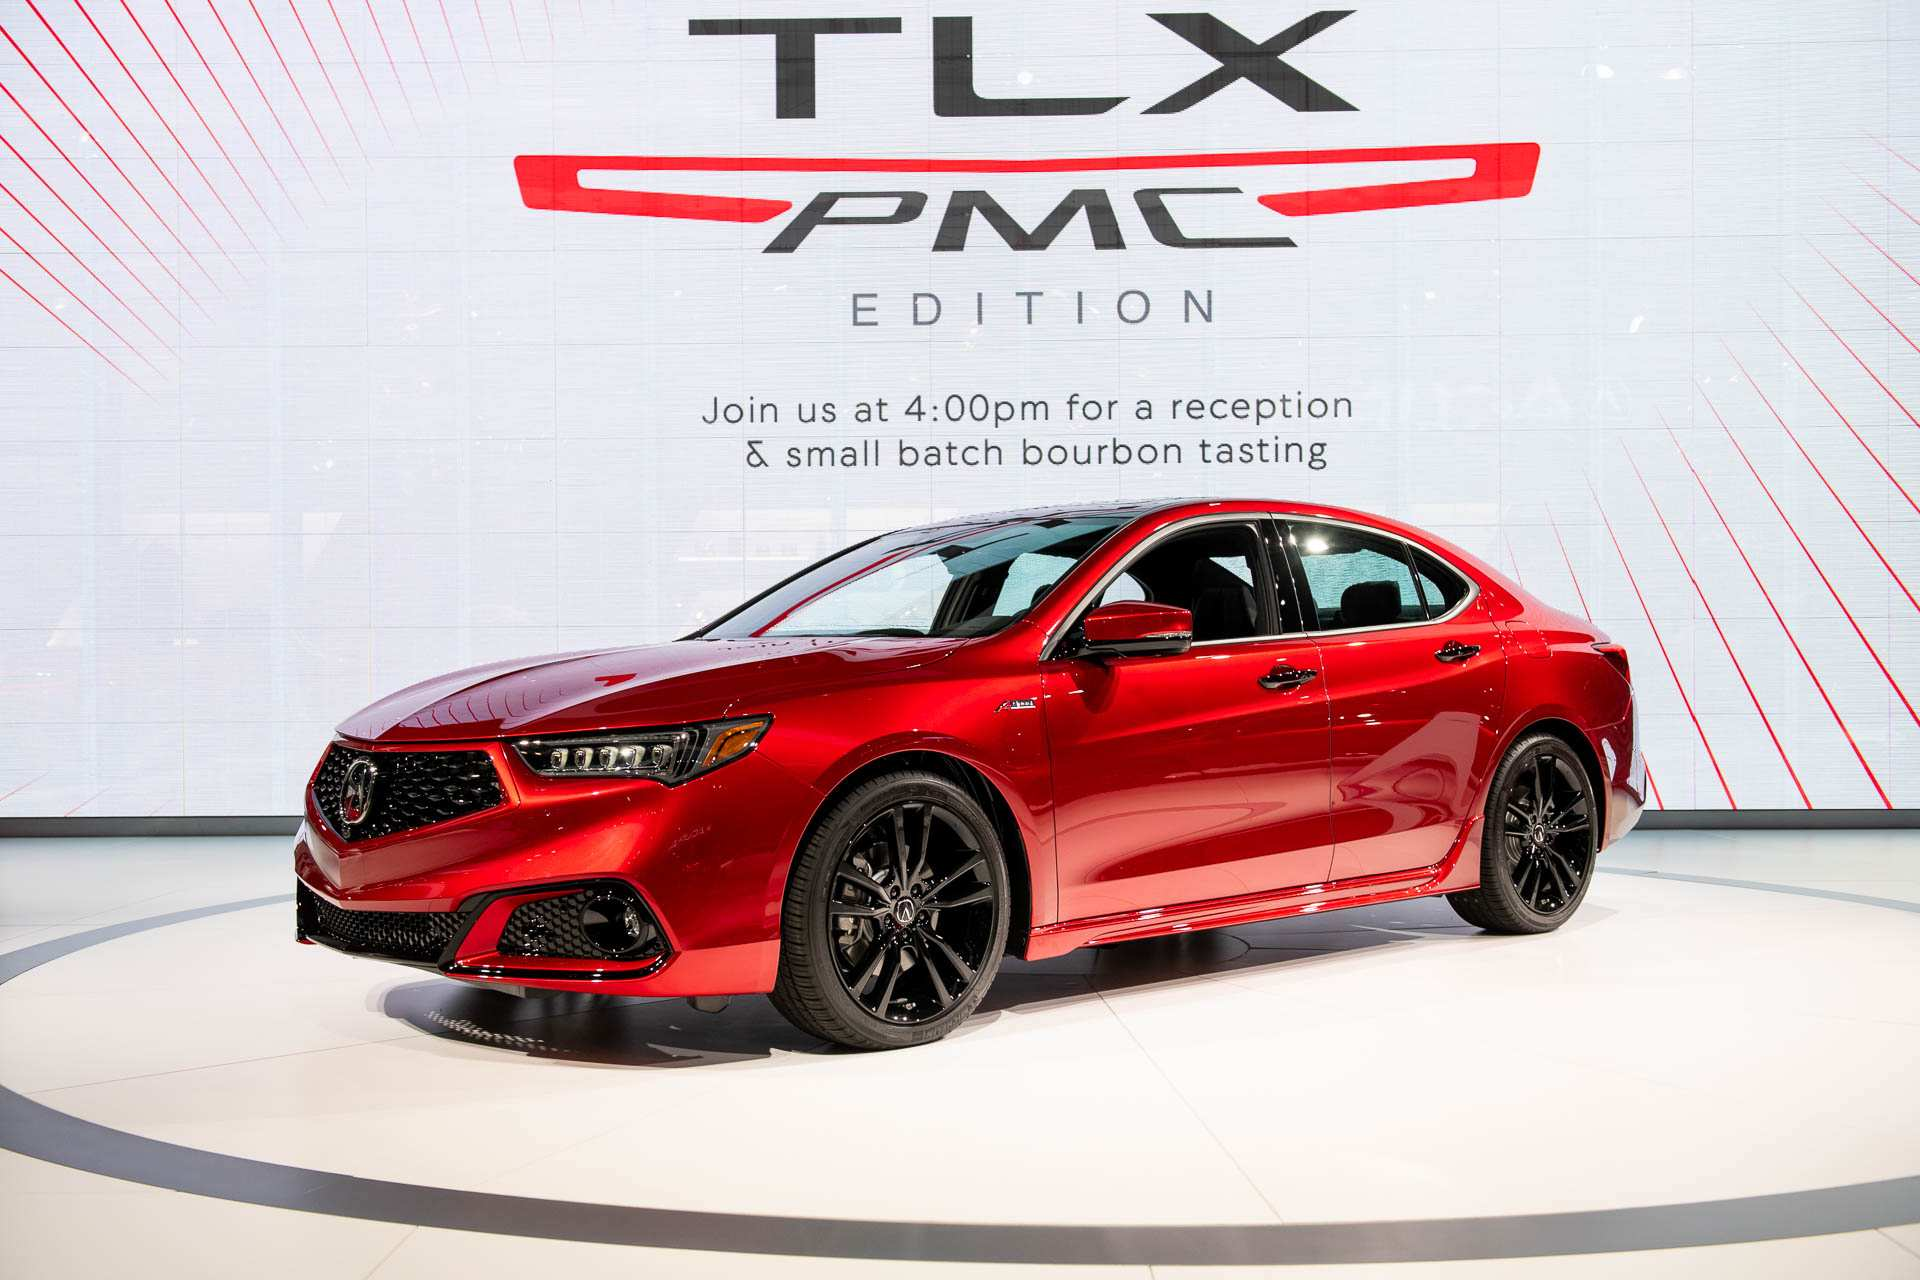 58 The 2020 Acura Tlx Pmc Edition Price History